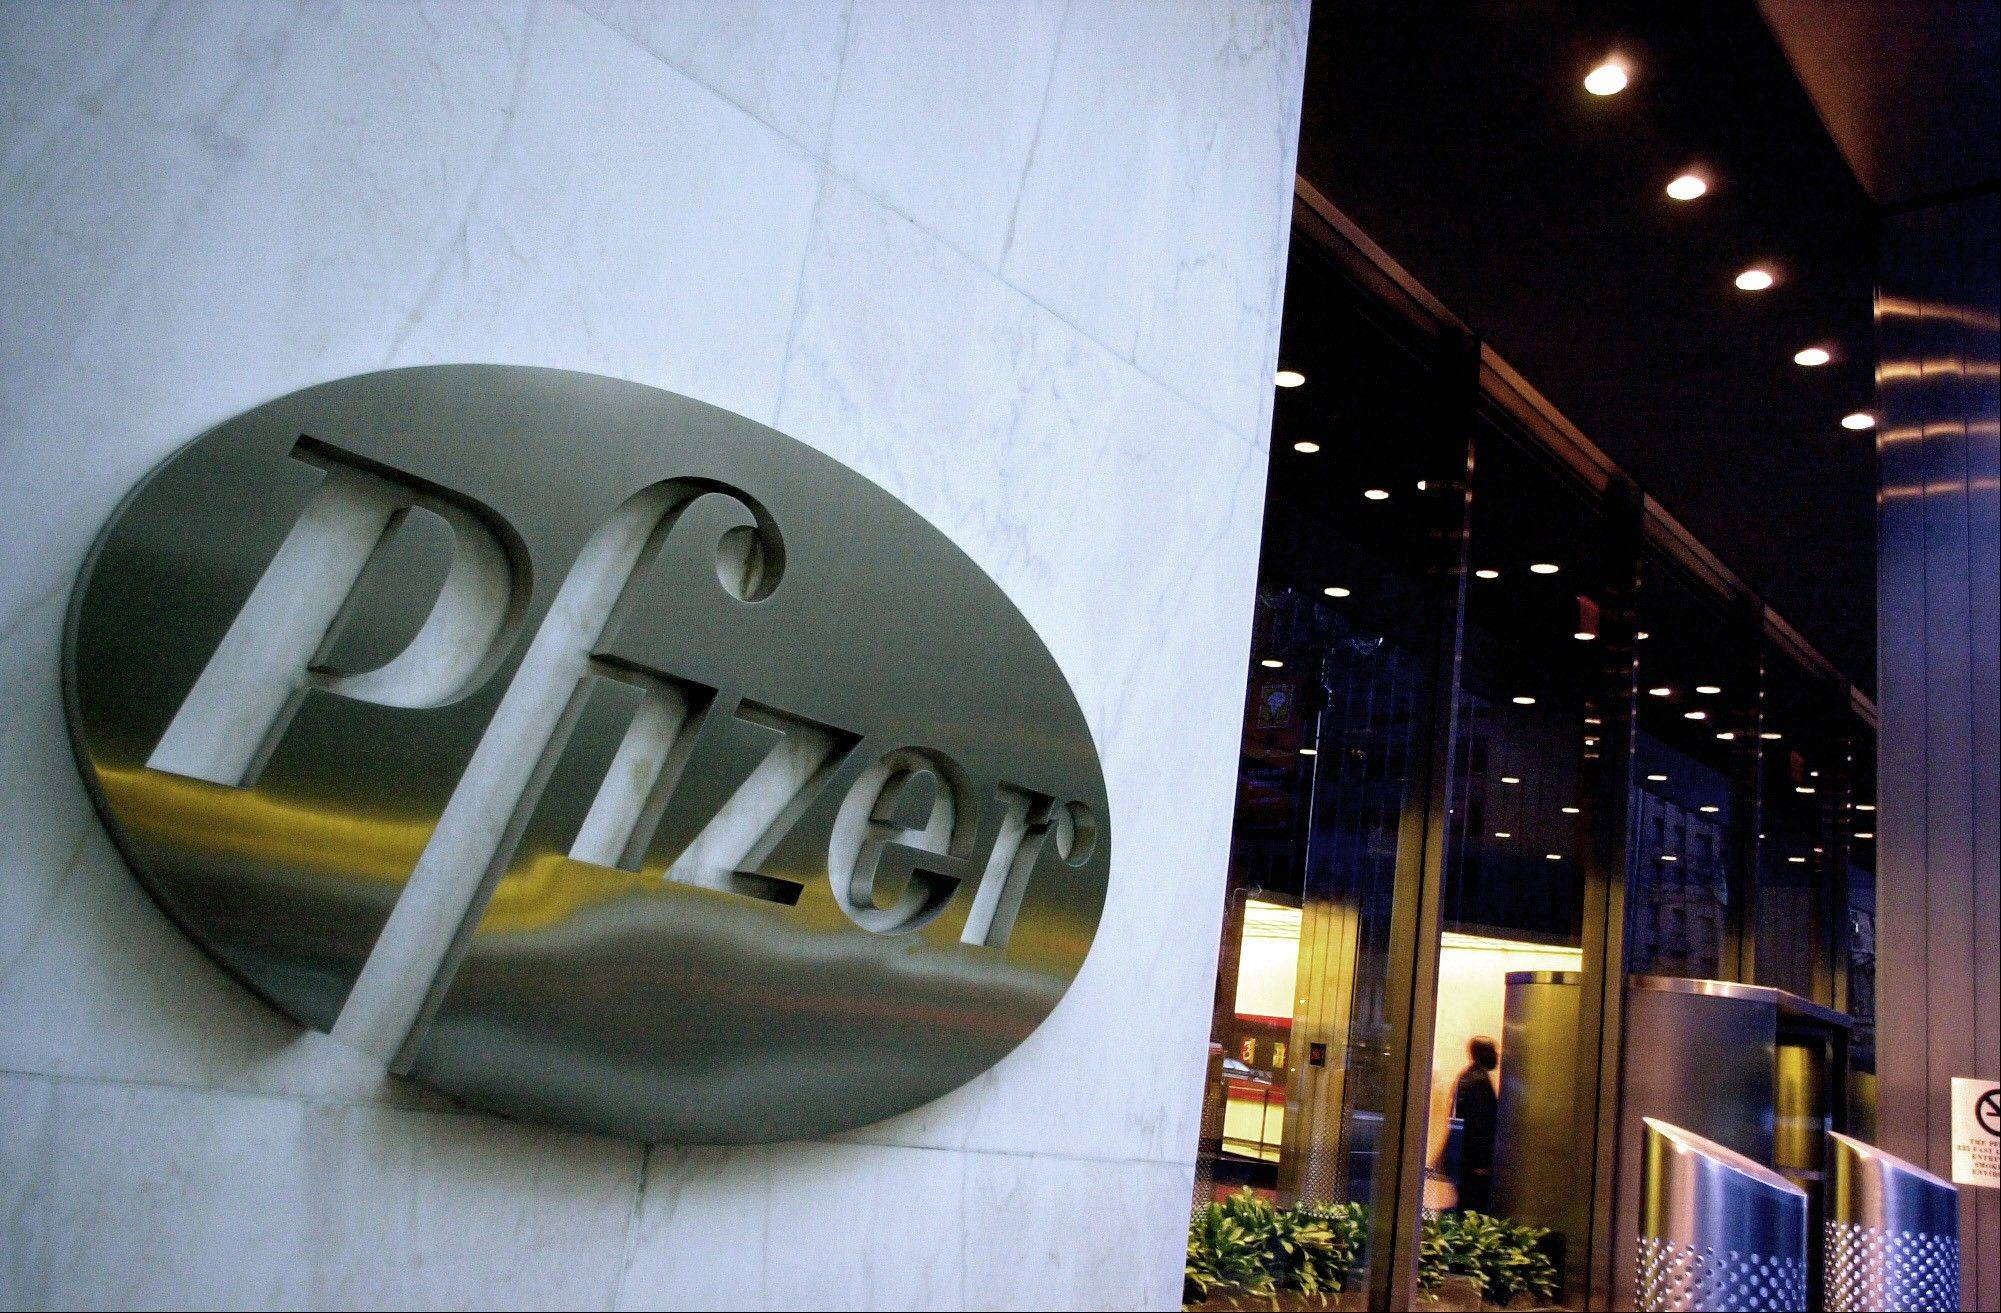 Pfizer, the maker of Zoloft is being sued in an unusual case alleging the popular antidepressant has no more benefit than a dummy pill and that patients who took it should be reimbursed for their costs.